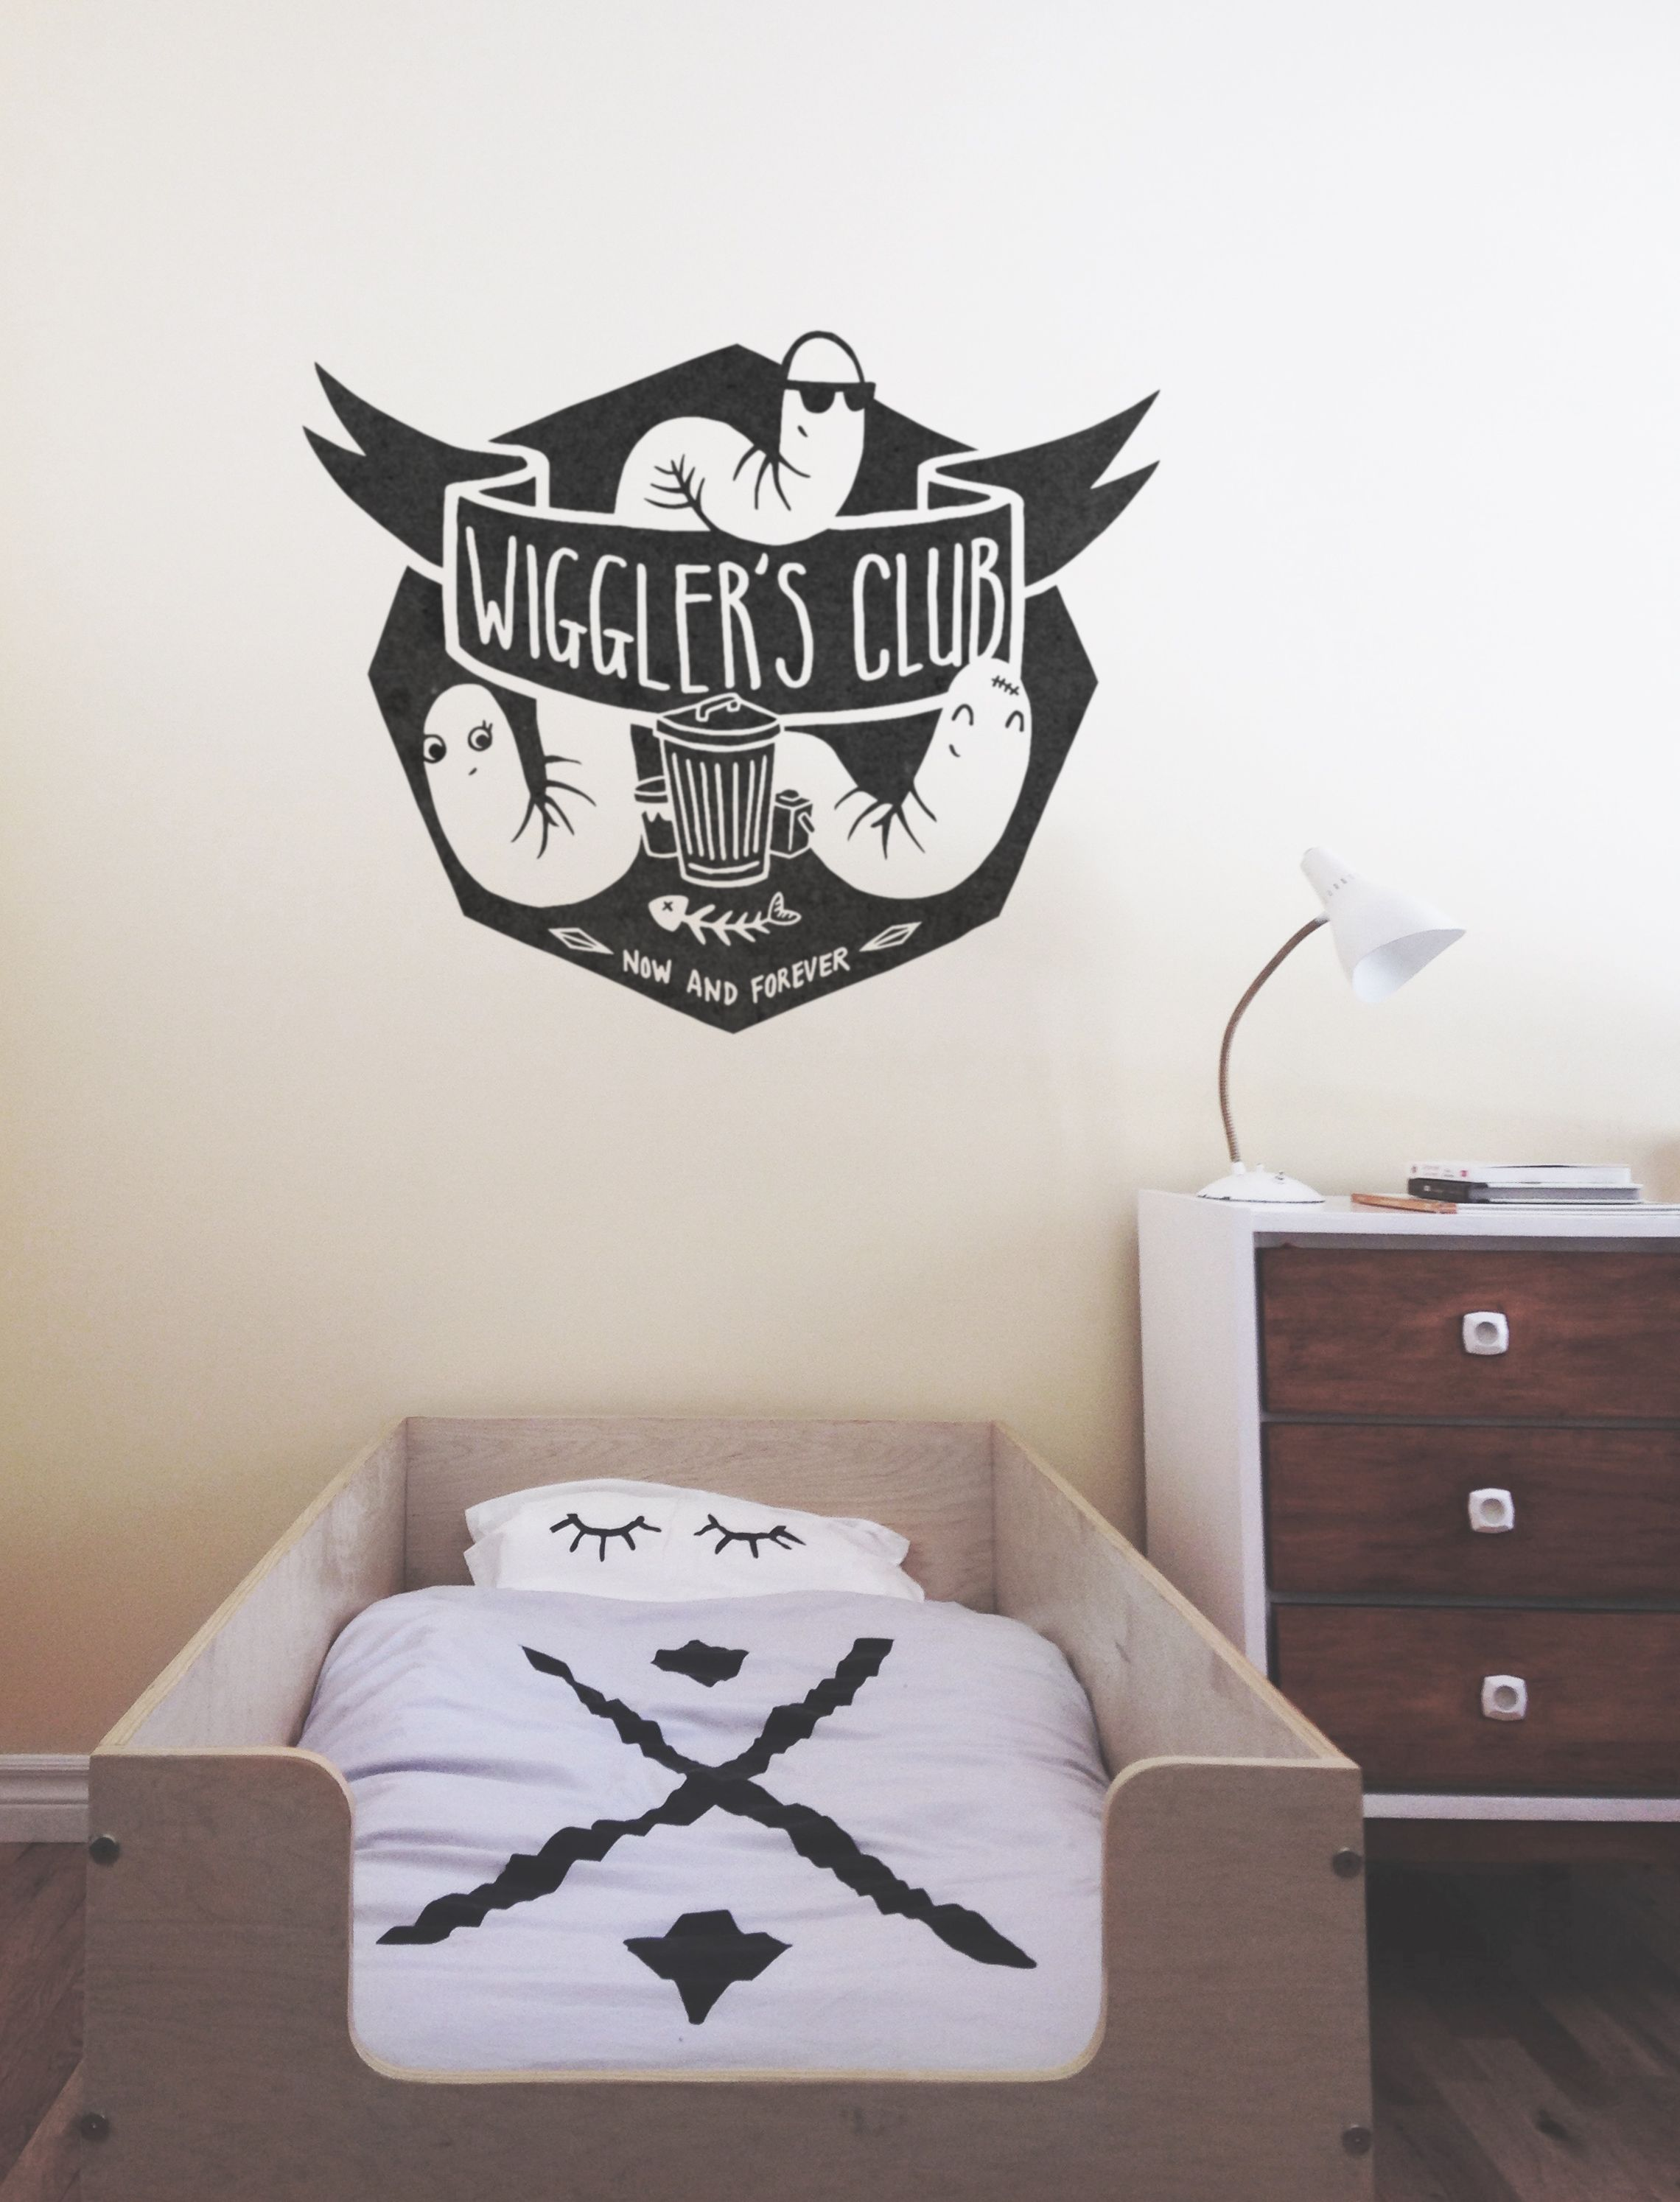 ADzif is a Montreal-based company that is specialized in designing and producing decorative wall art products. Browse our selection of wall decals now! & WIGGLERu0027S CLUB! Lol ;) Decal available on ADzif.ca | Tamé ...